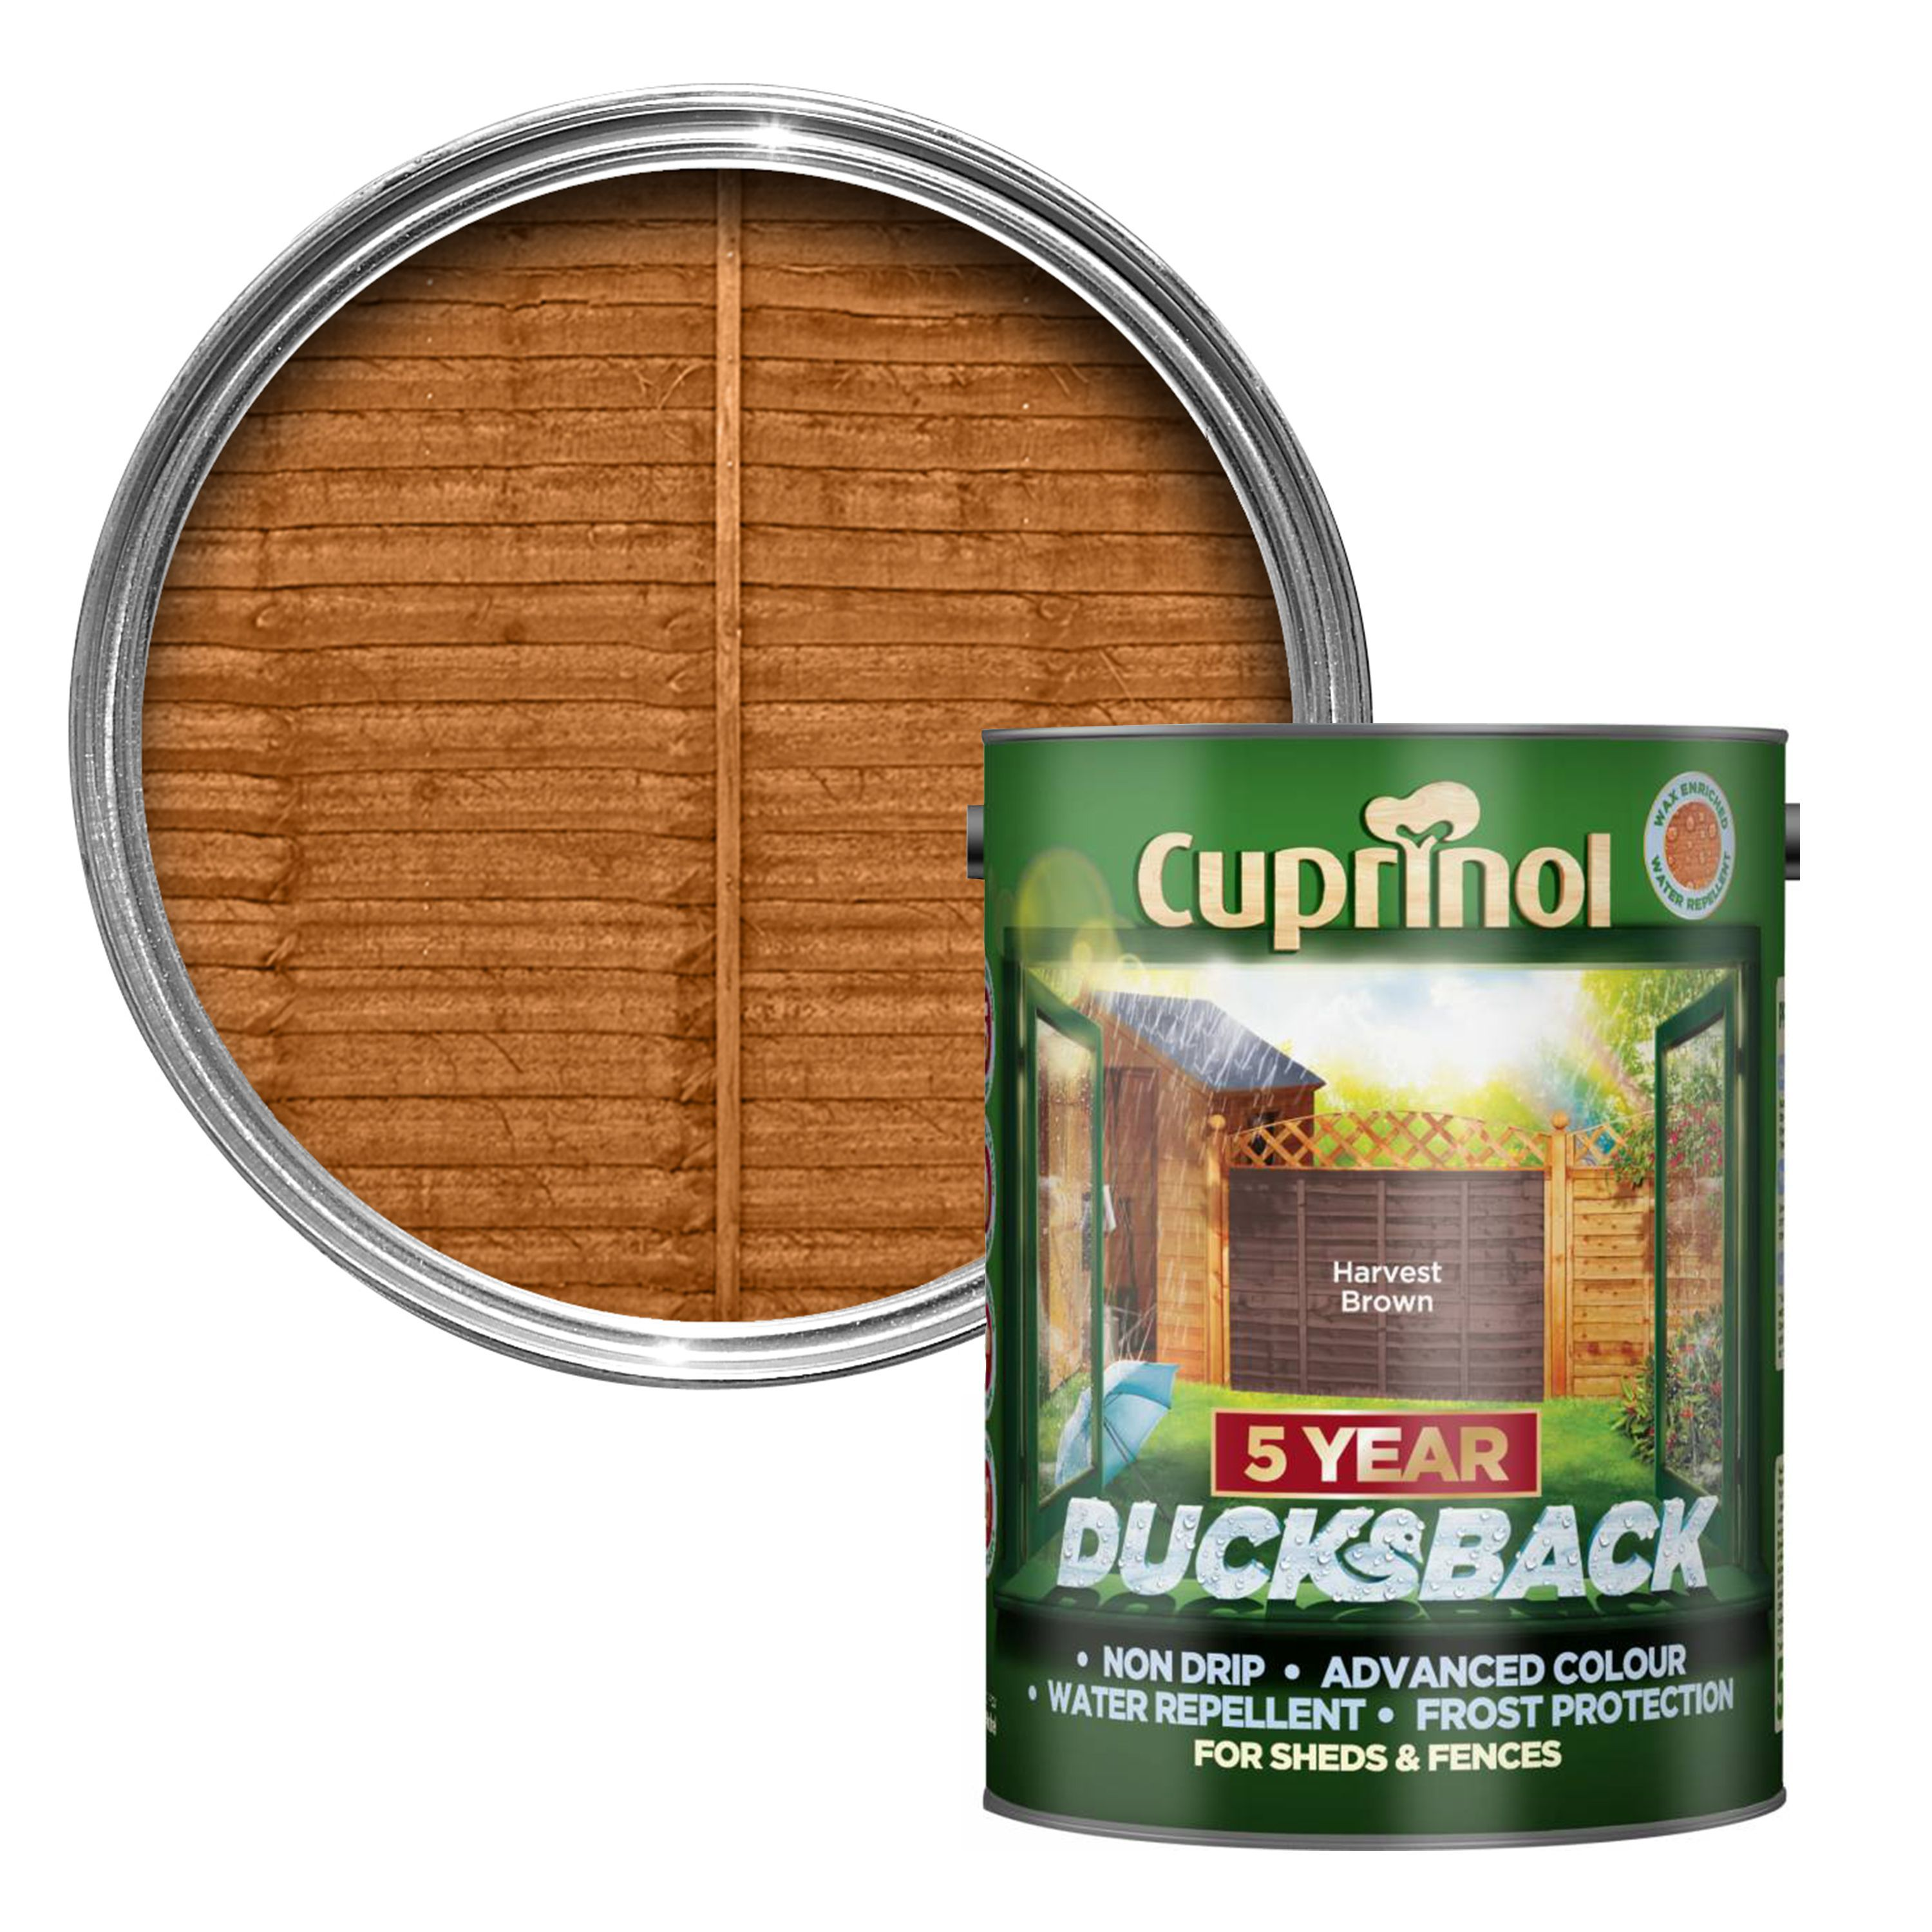 Cuprinol 5 Year Ducksback Autumn Gold Shed & Fence Treatment 5L